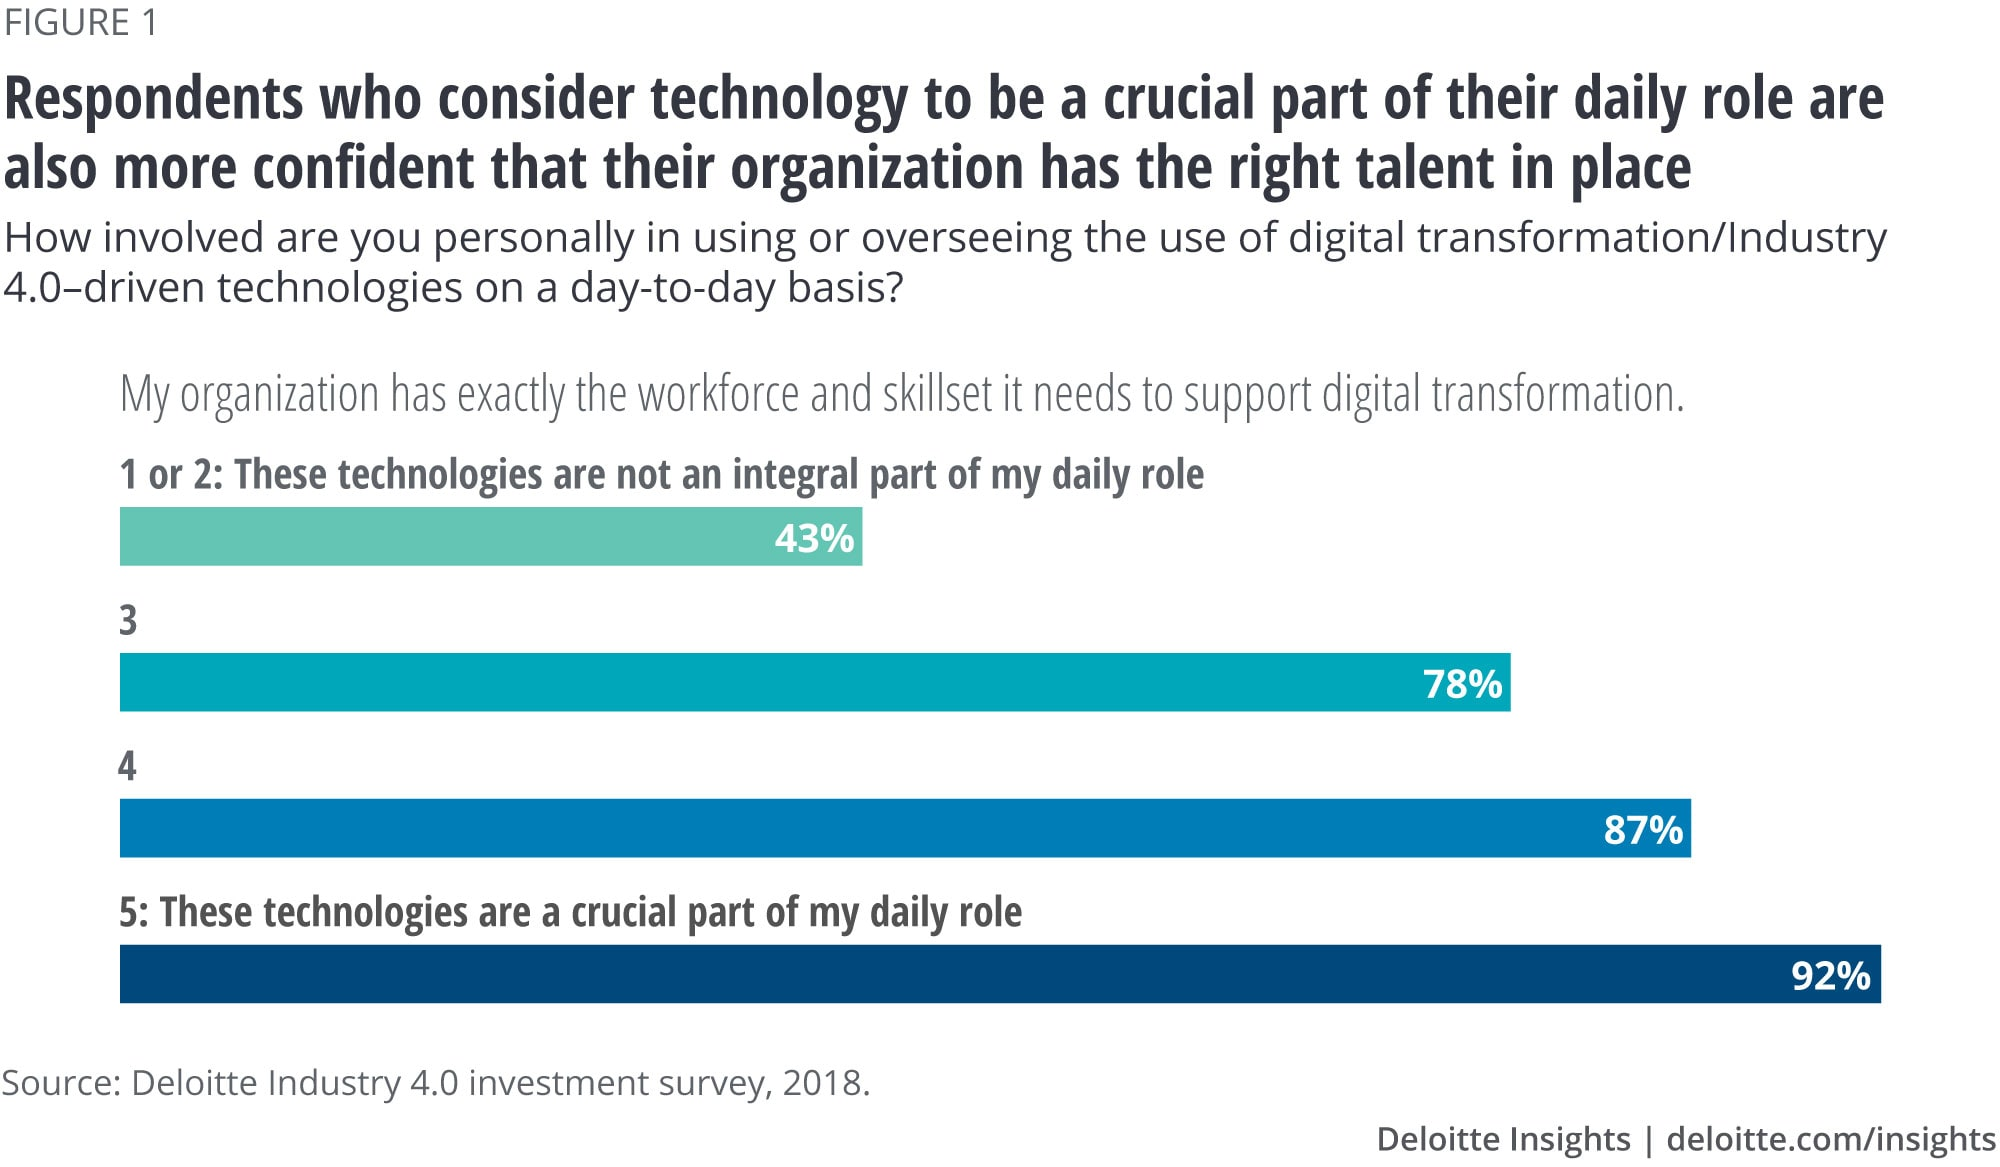 Respondents who consider technology to be a crucial part of their daily role are also more confident that their organization has the right talent in place